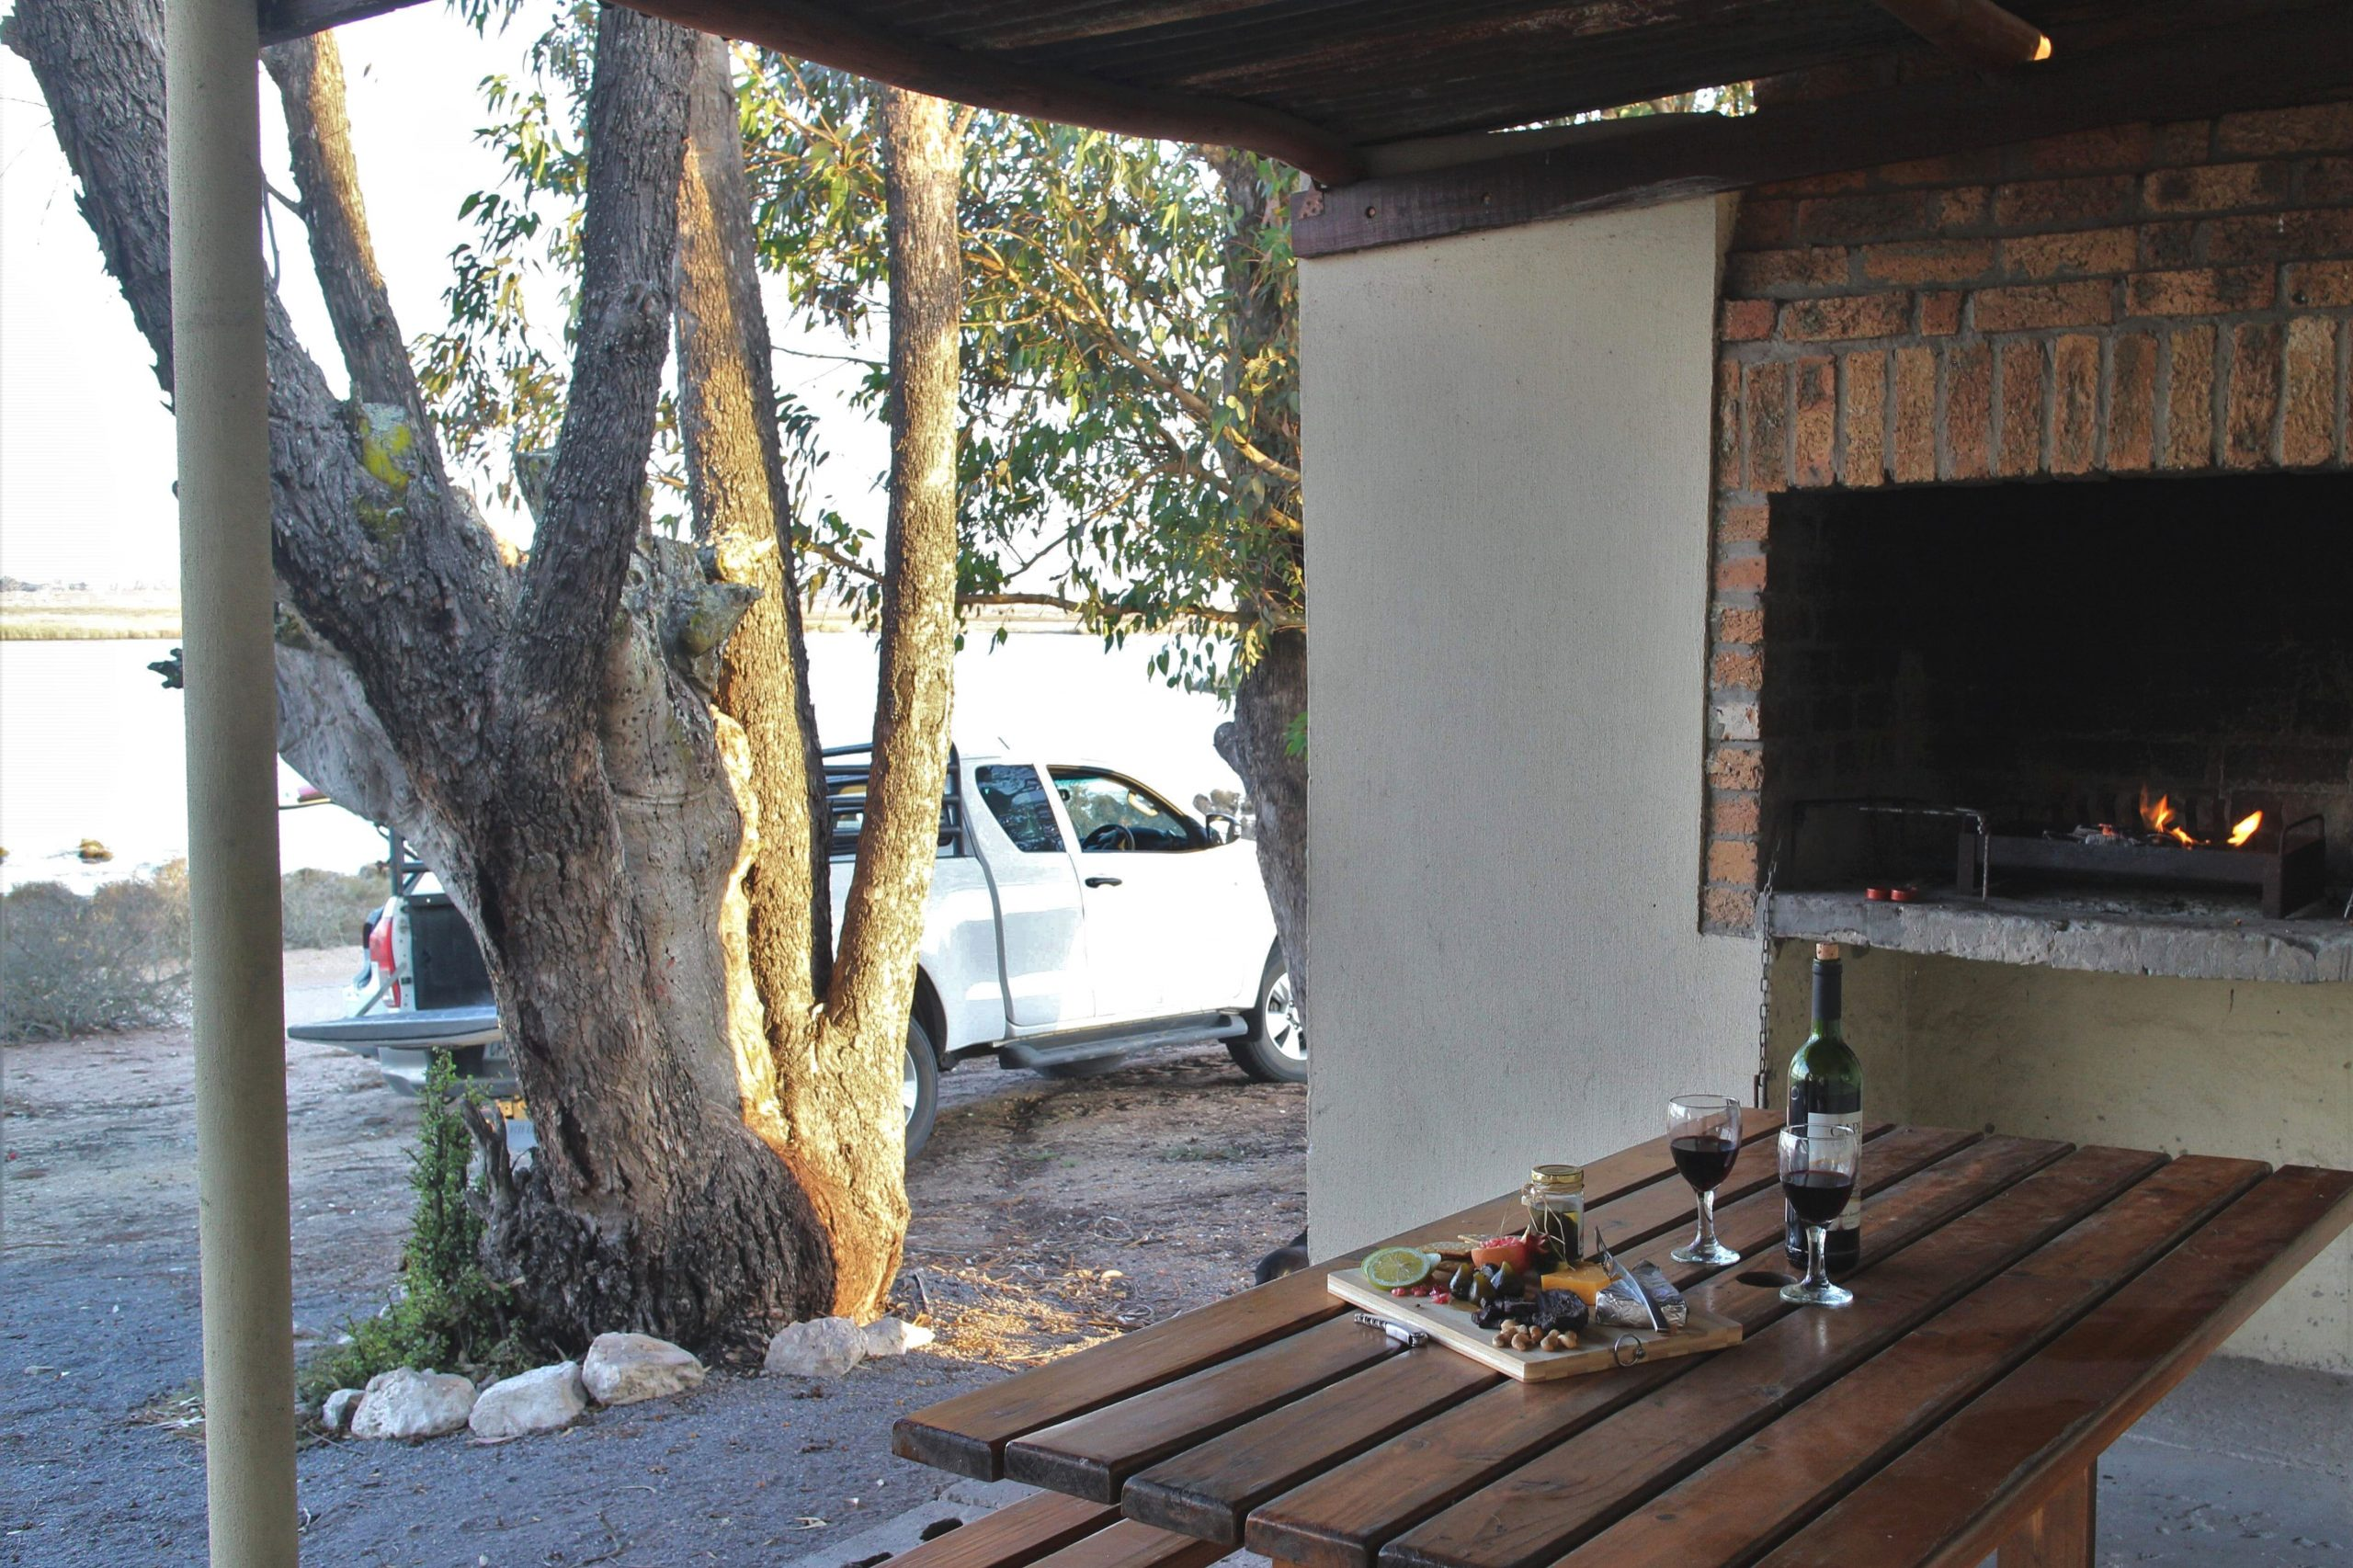 Kuifkopvisvanger - Bleshoender Cottage, self catering accommodation on the Berg River, Velddrif, West Coast 1